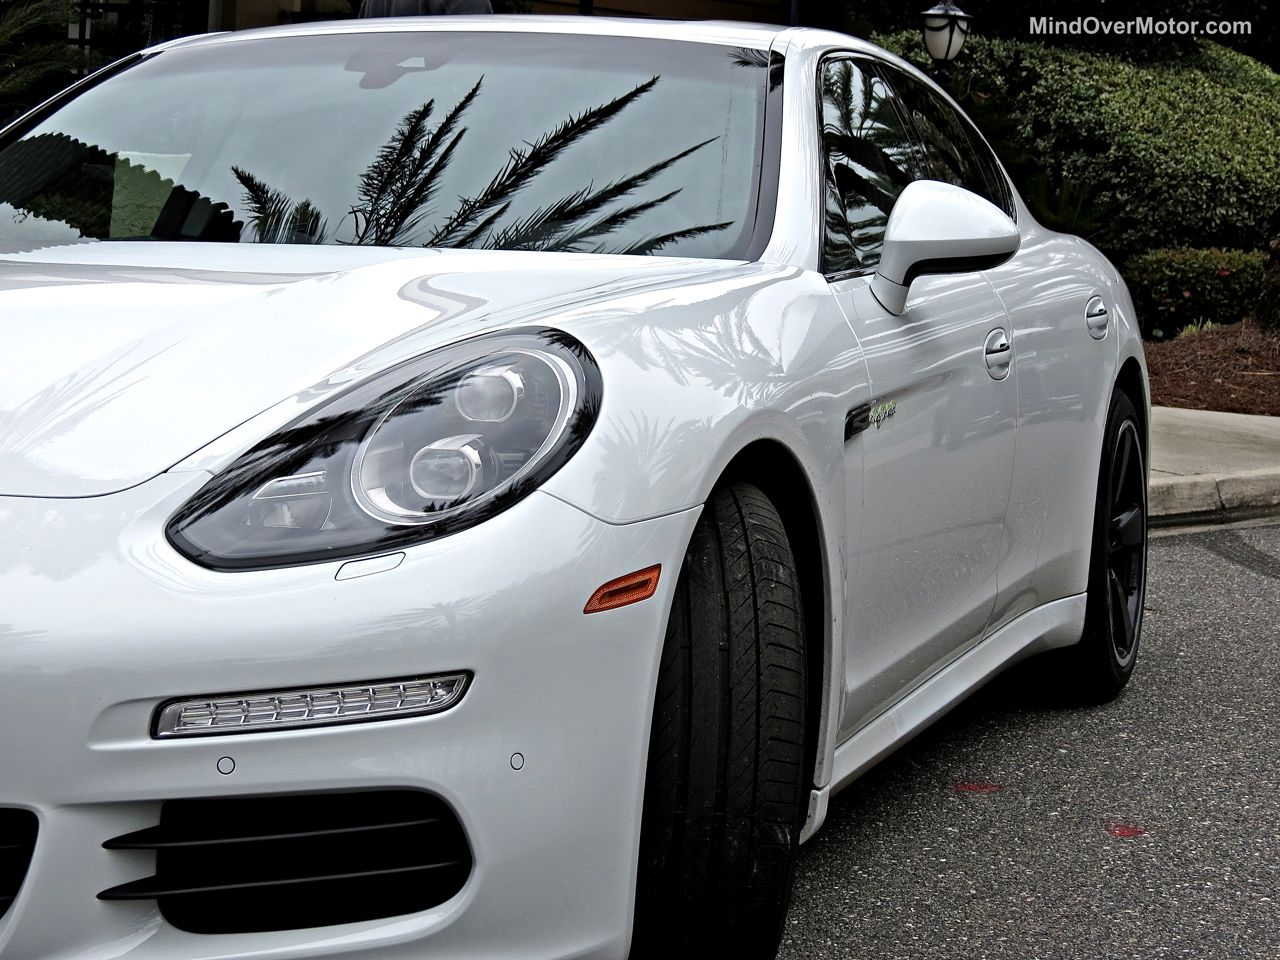 Porsche Panamera S E-Hybrid LED Head Lights